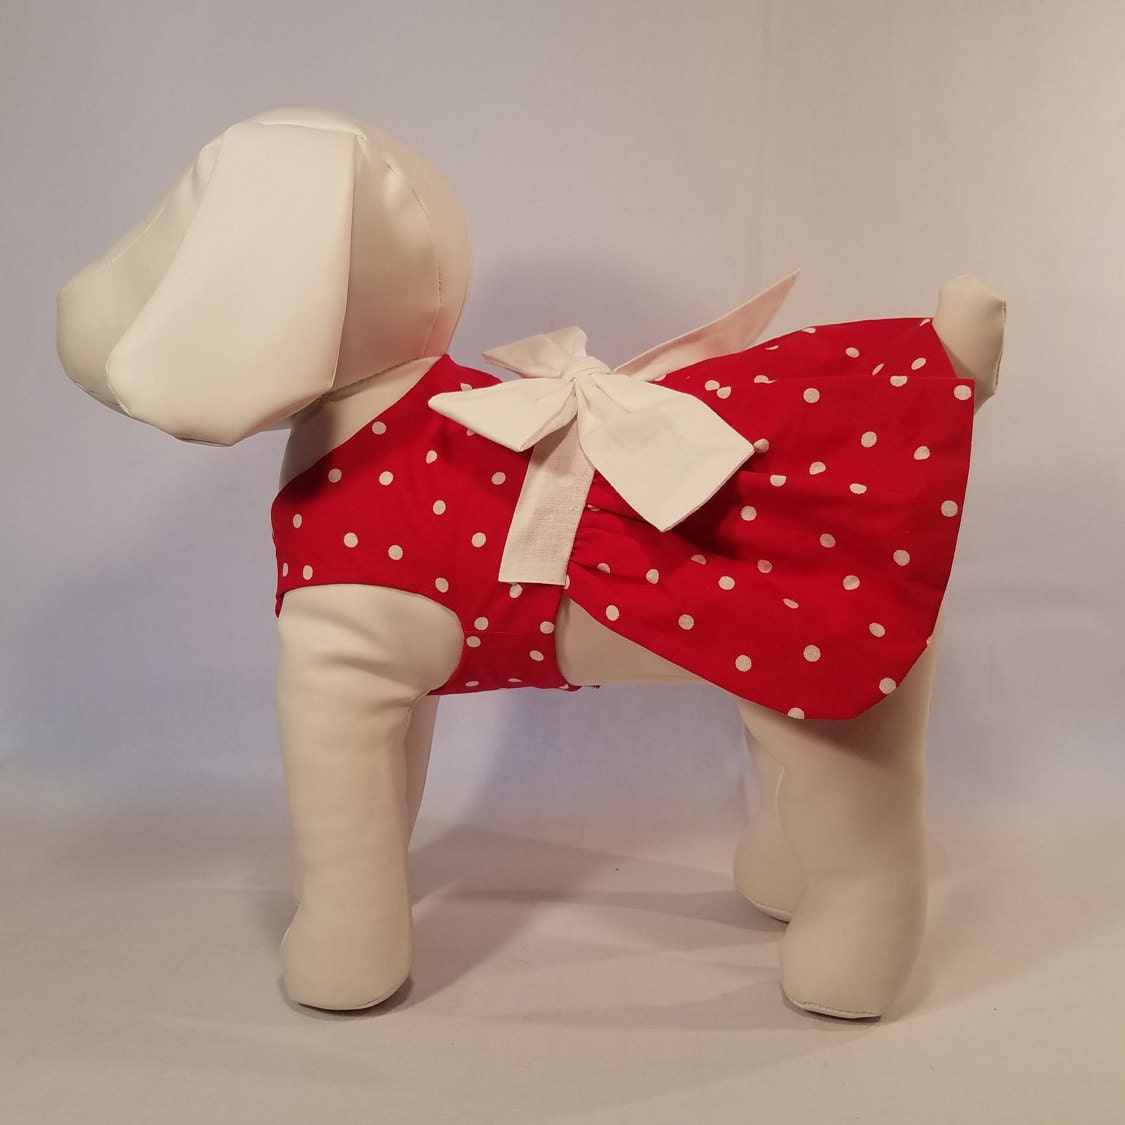 08ab7e7986 Dog Dress Red With White Polka Dots - Dog Clothes Pet Clothes